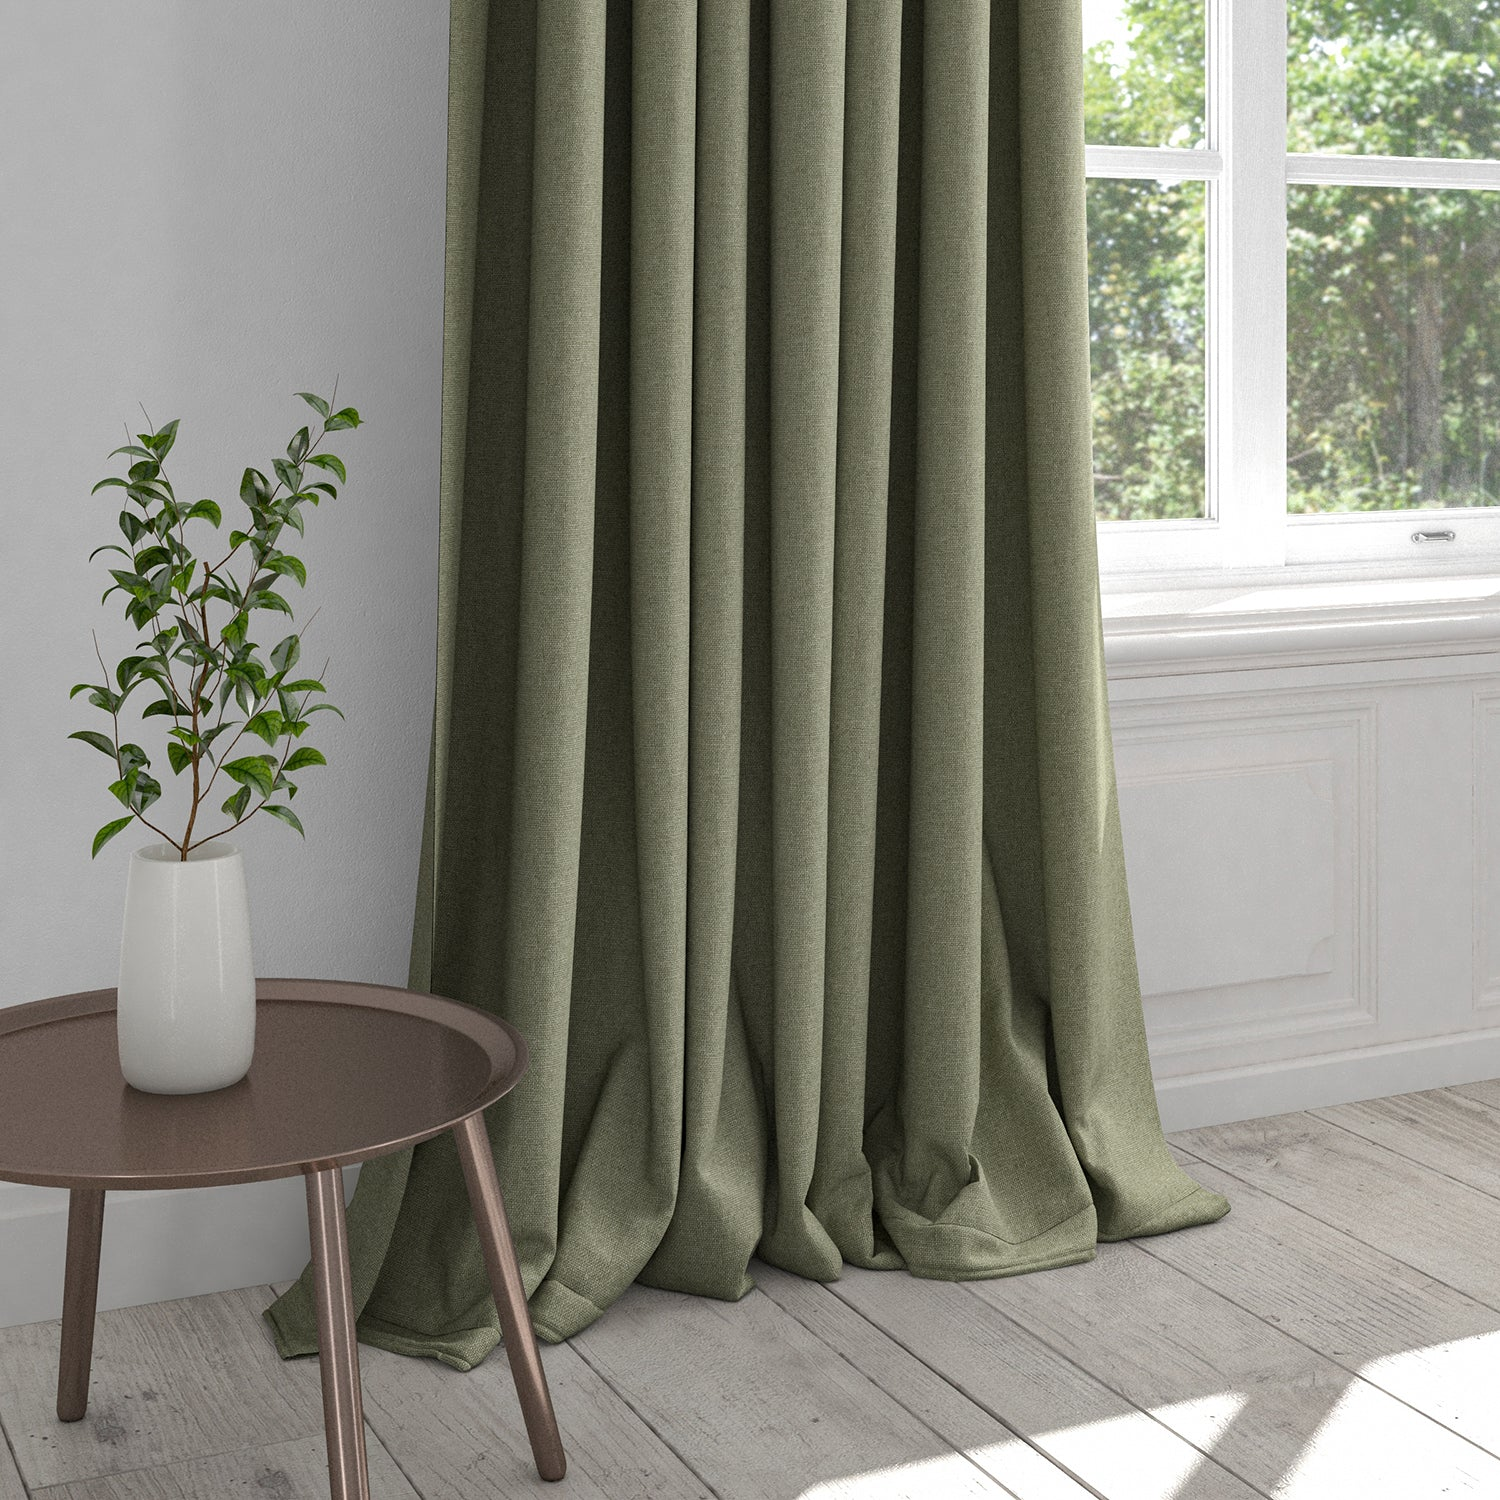 Curtain in a plain grey washable cotton fabric